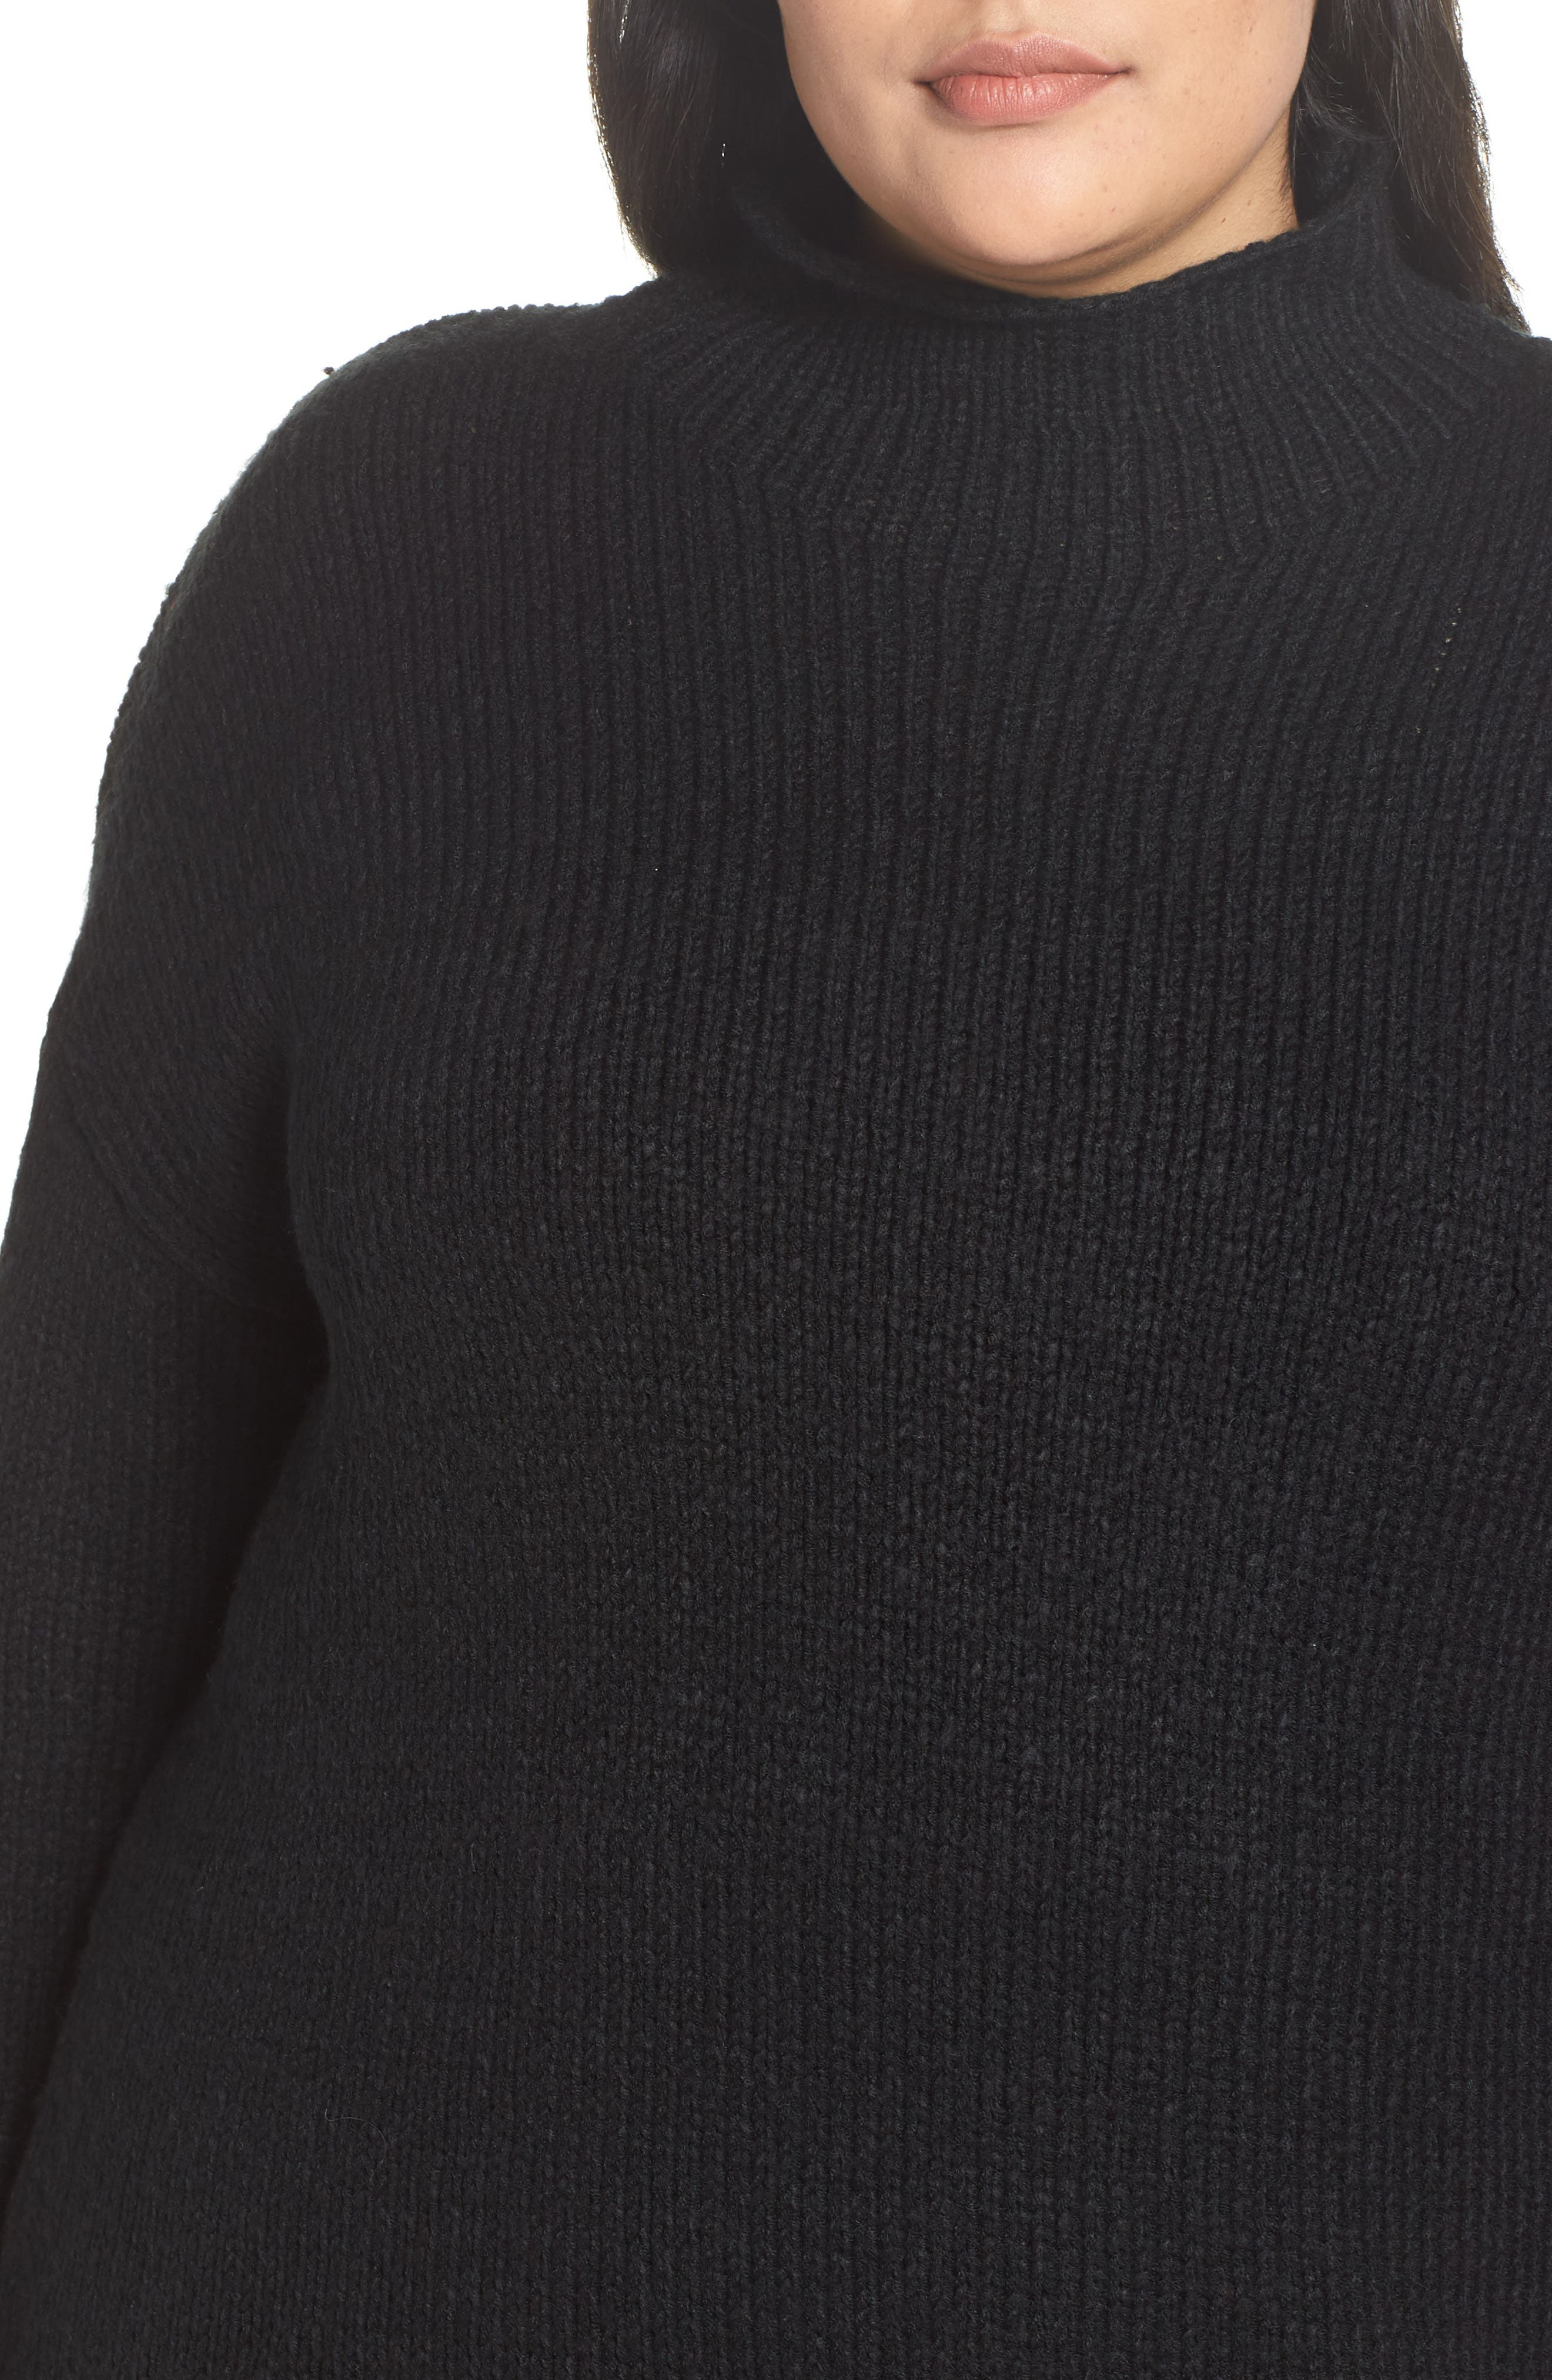 Supersized Curl Up Sweater,                             Alternate thumbnail 4, color,                             001